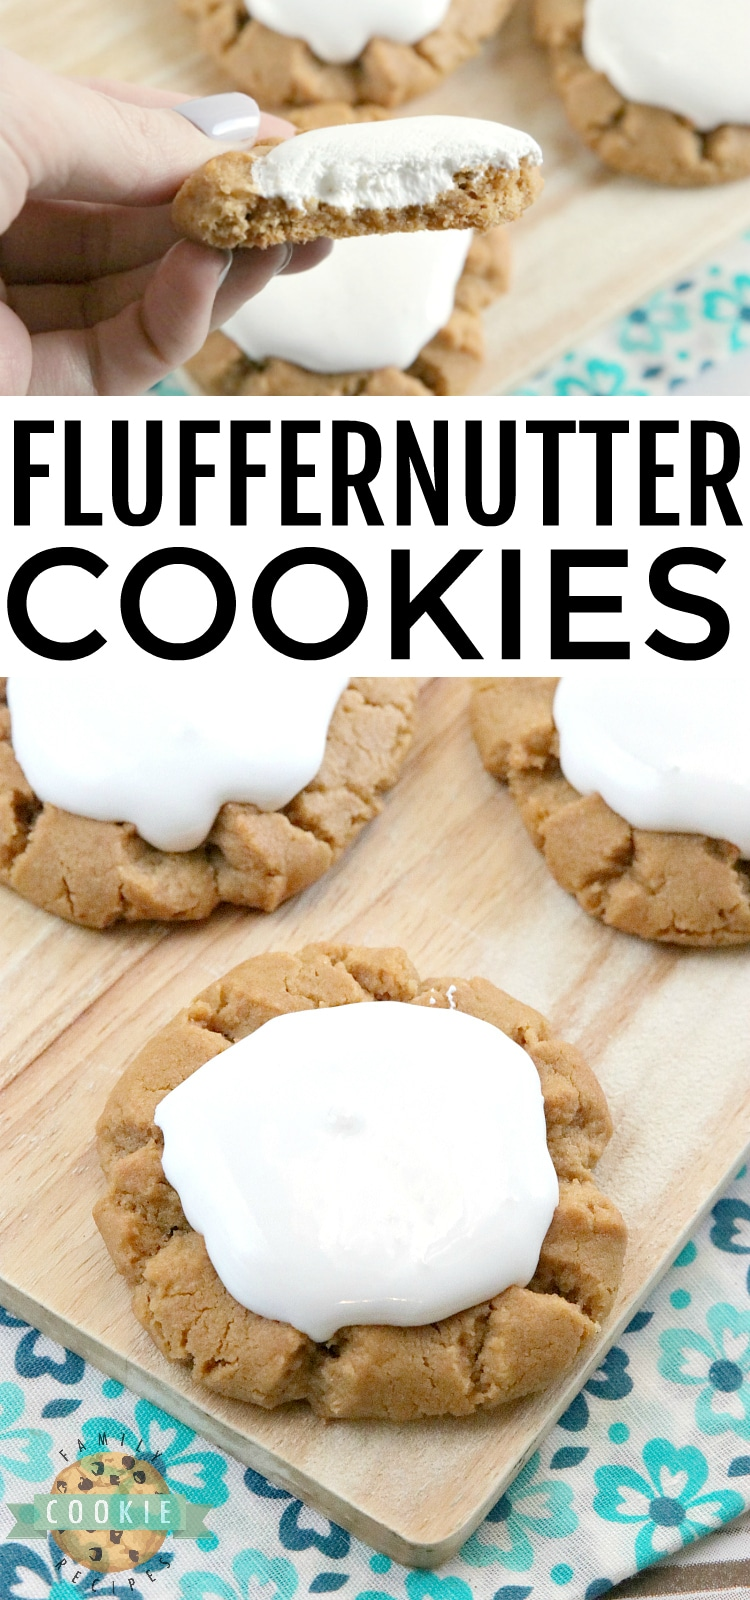 Fluffernutter Cookies take a traditional peanut butter cookie recipe to the next level by adding marshmallow fluff to the top! The peanut butter and marshmallow combination is absolutely amazing in this cookie recipe!